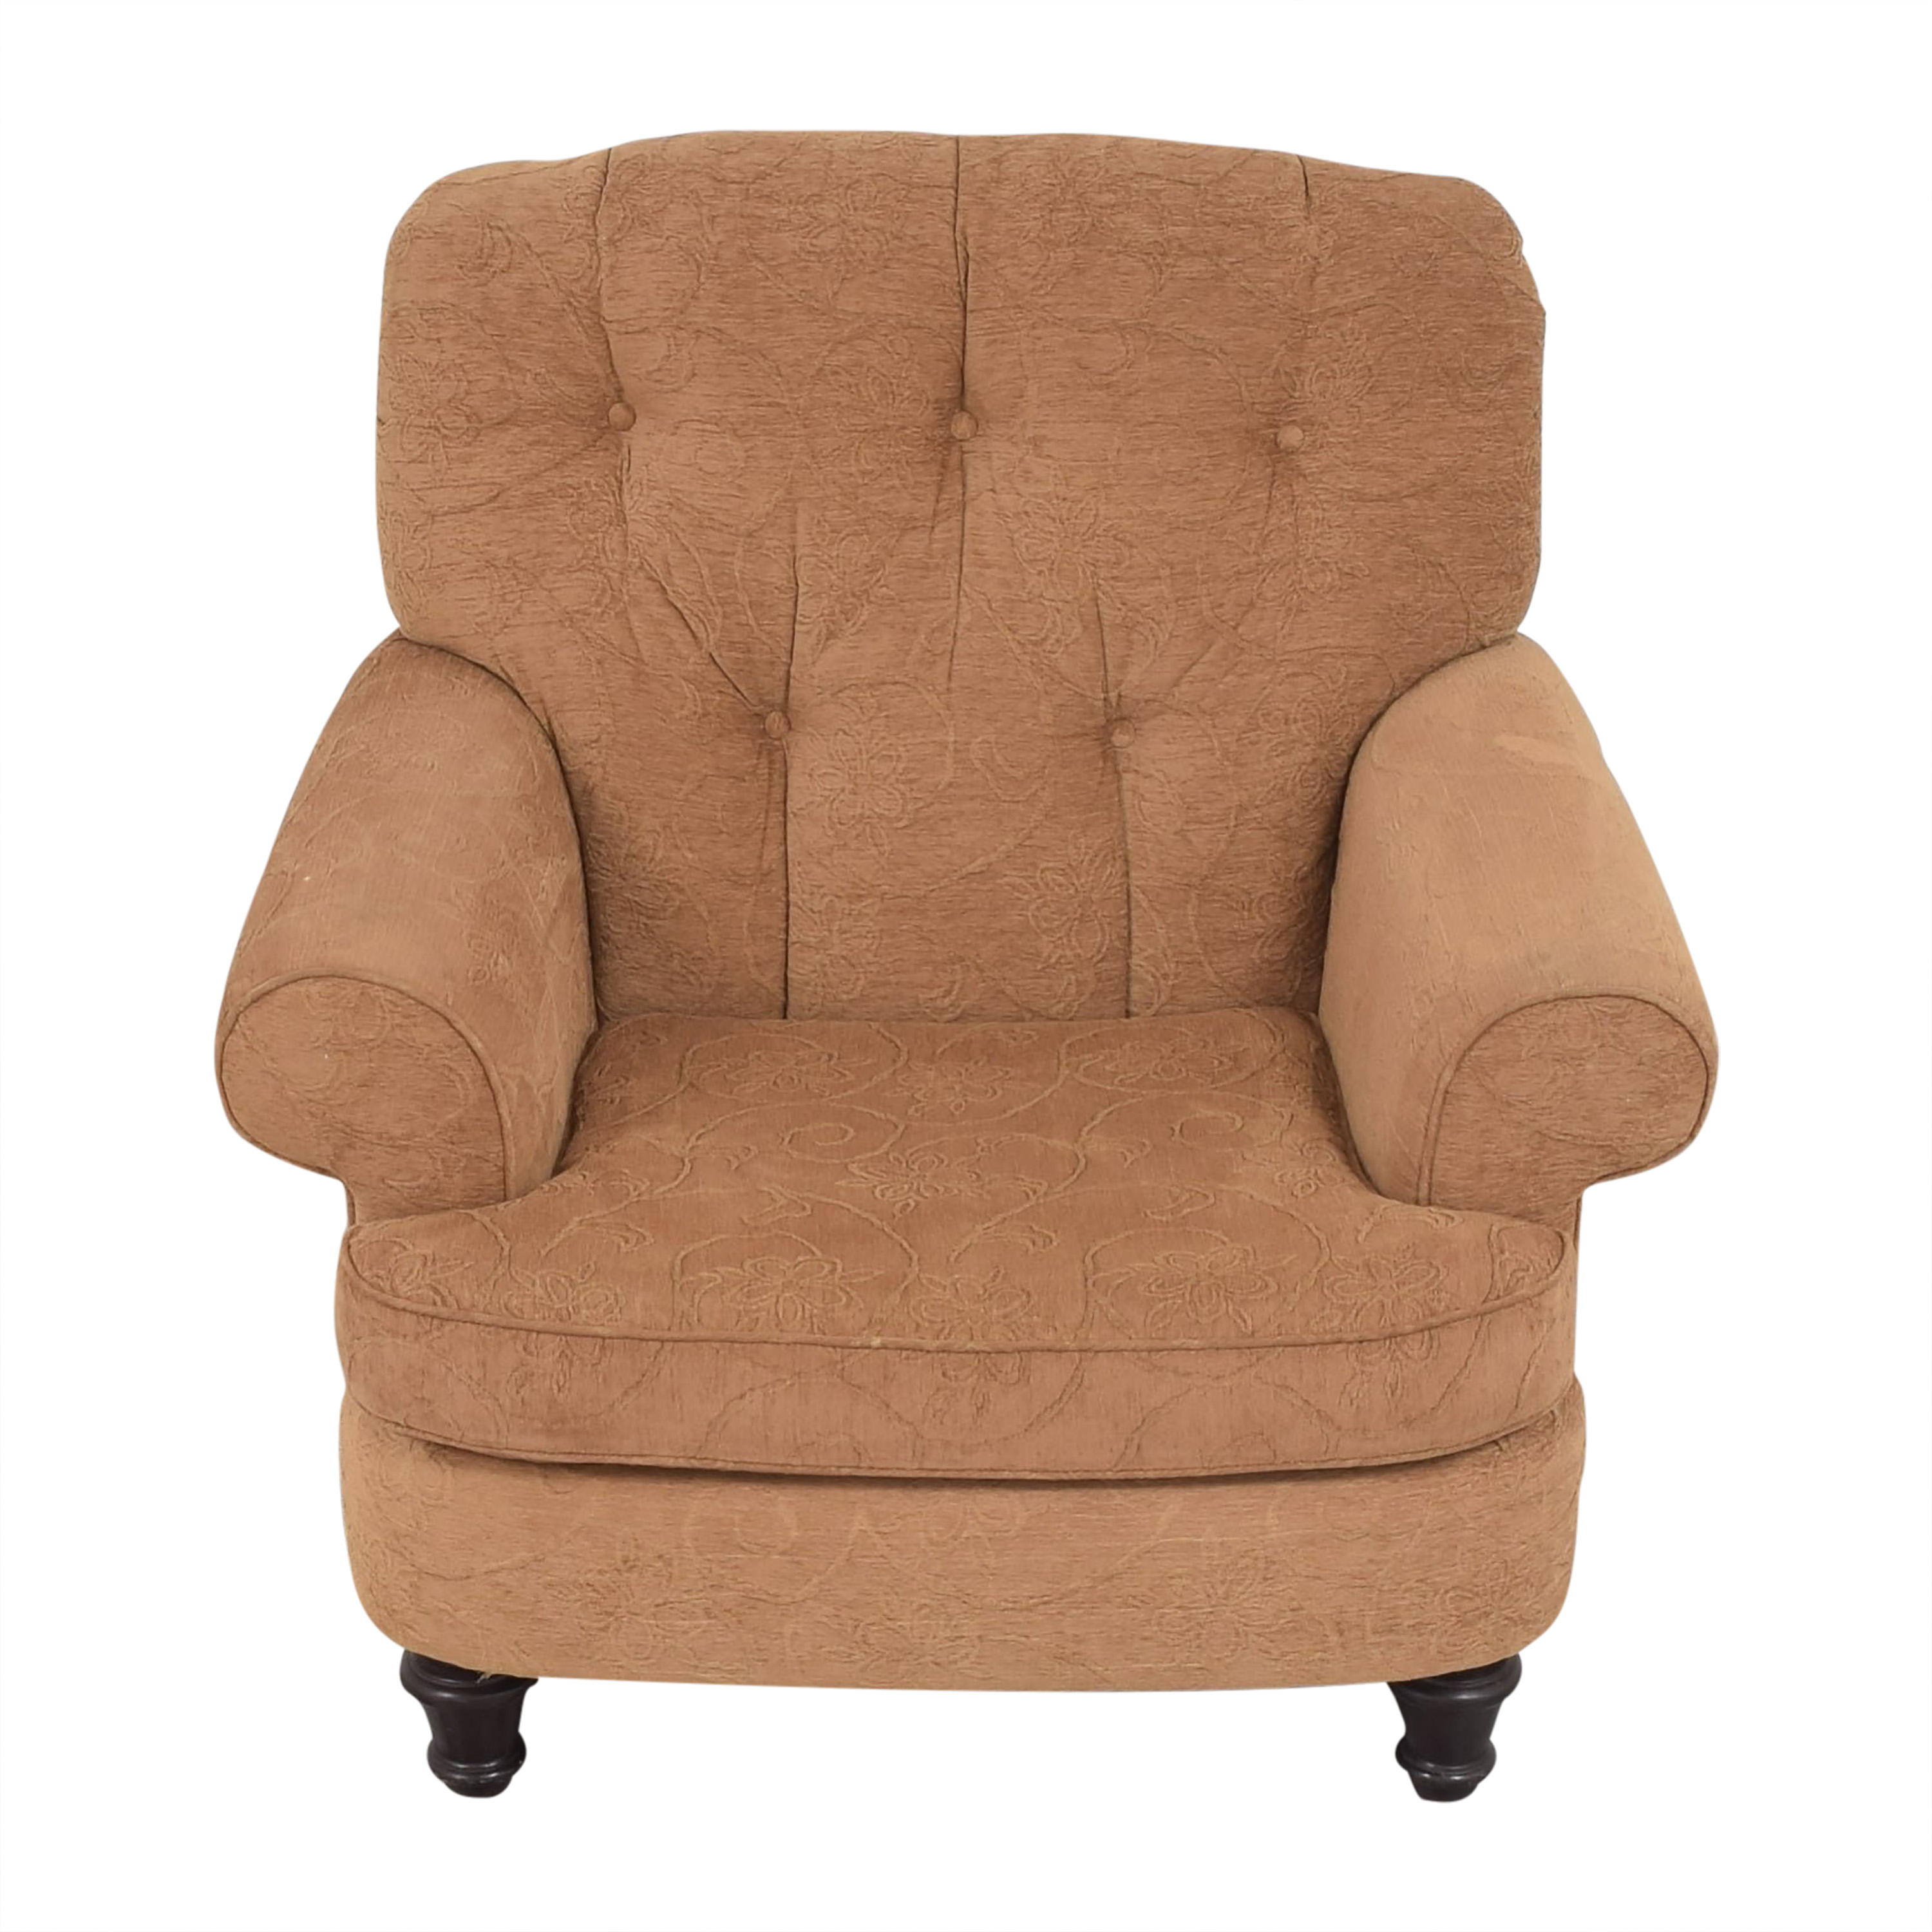 Oversized Roll Arm Accent Chair second hand